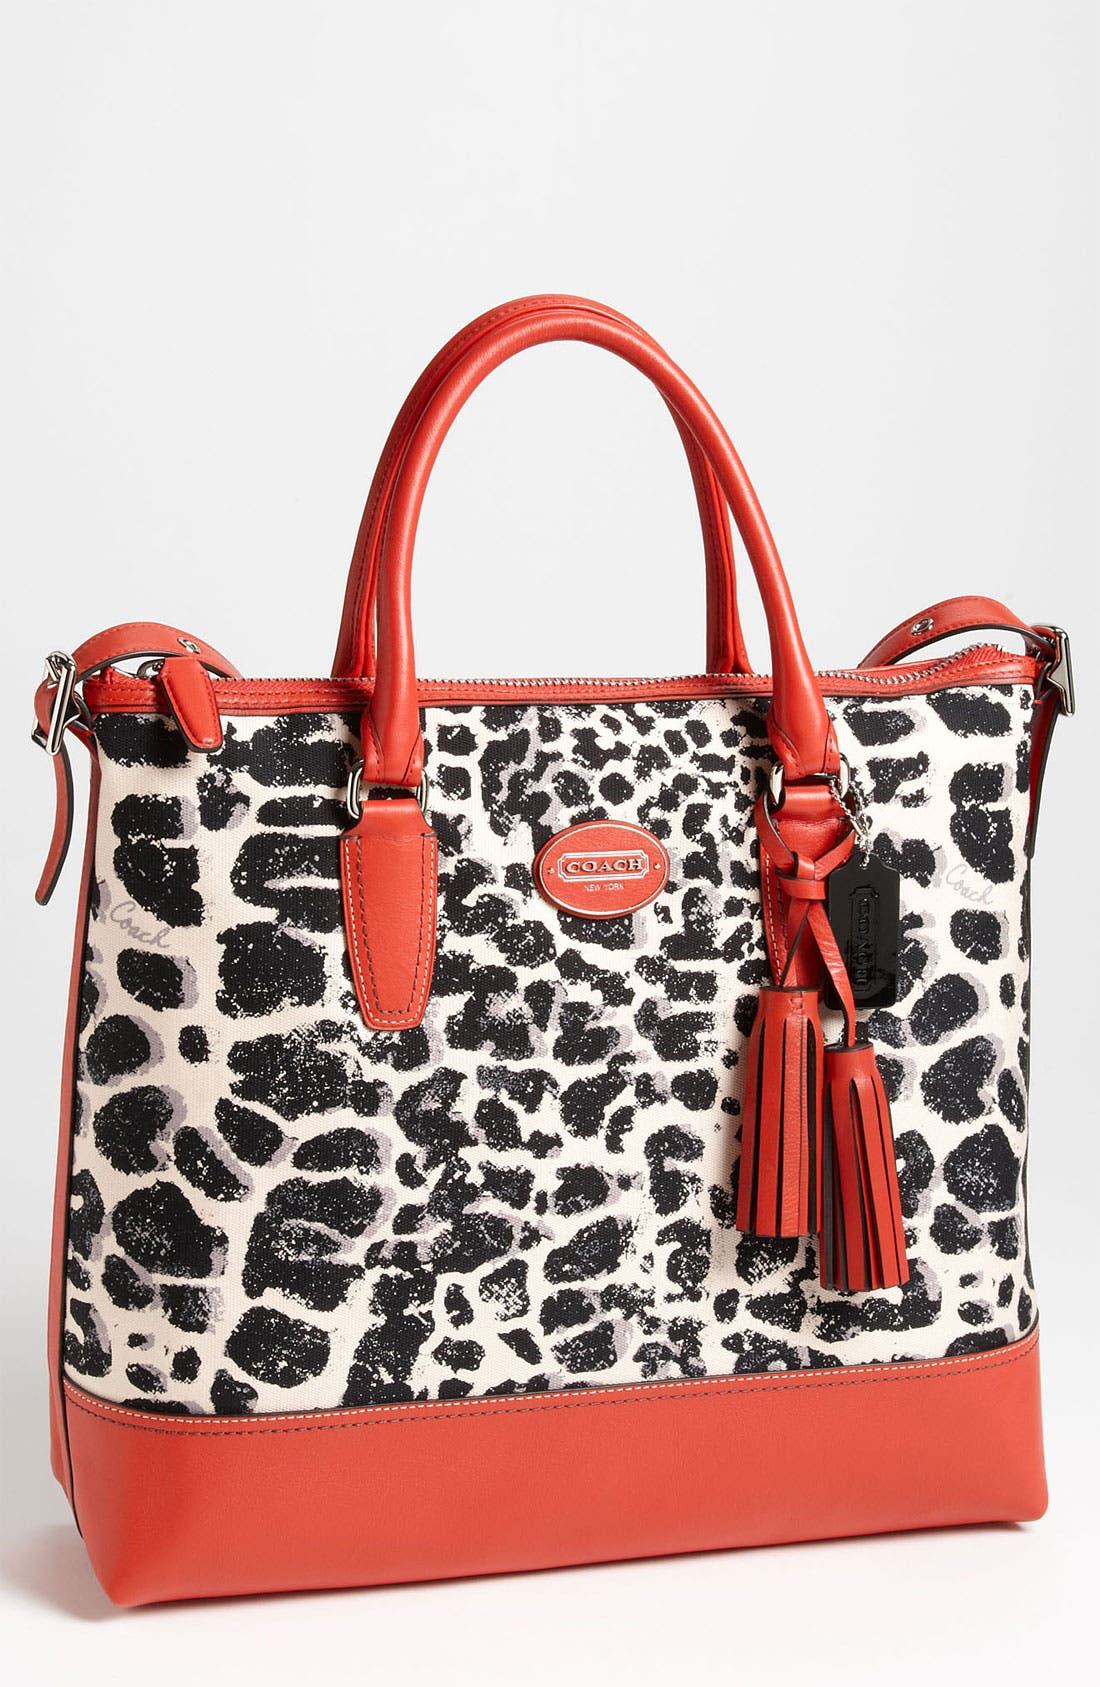 Alternate Image 1 Selected - COACH 'Legacy - Rory' Ocelot Print Satchel